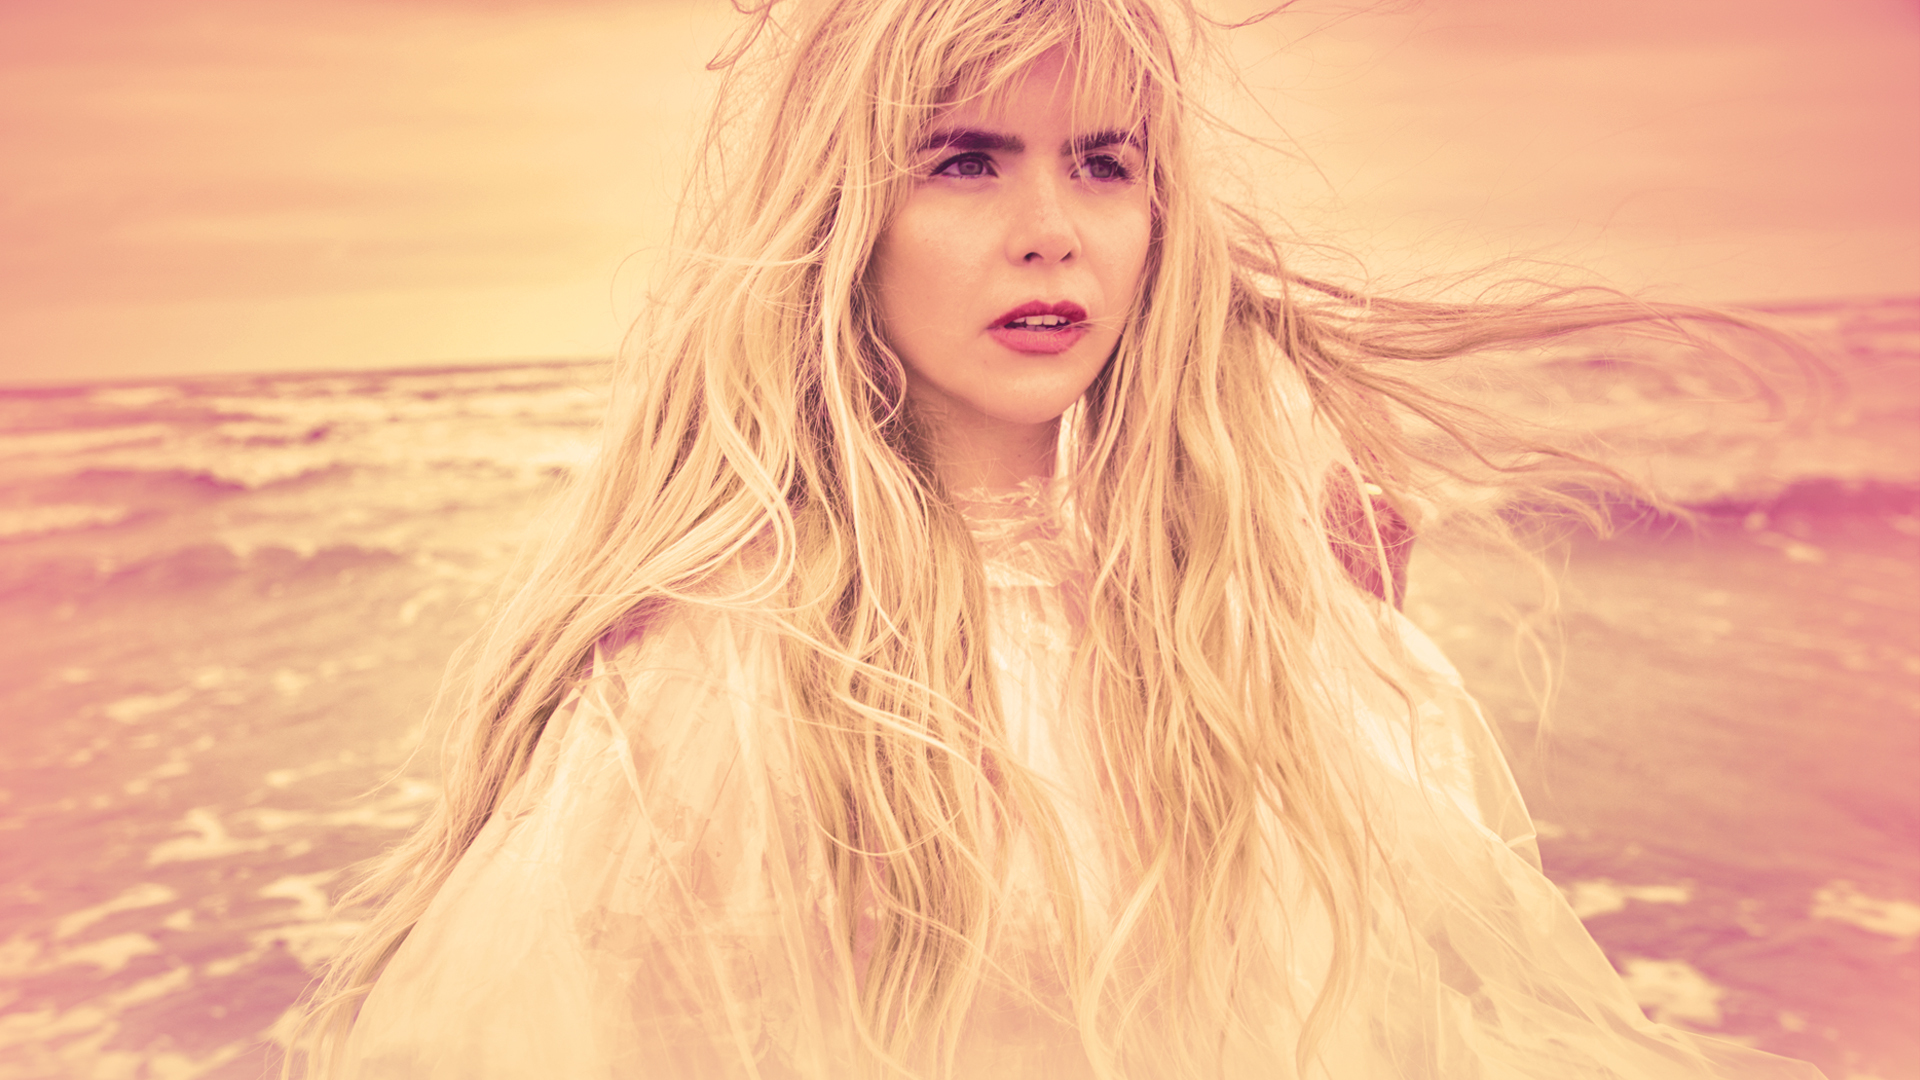 CONCERT: Paloma Faith will be in Somerset twice this summer for performances